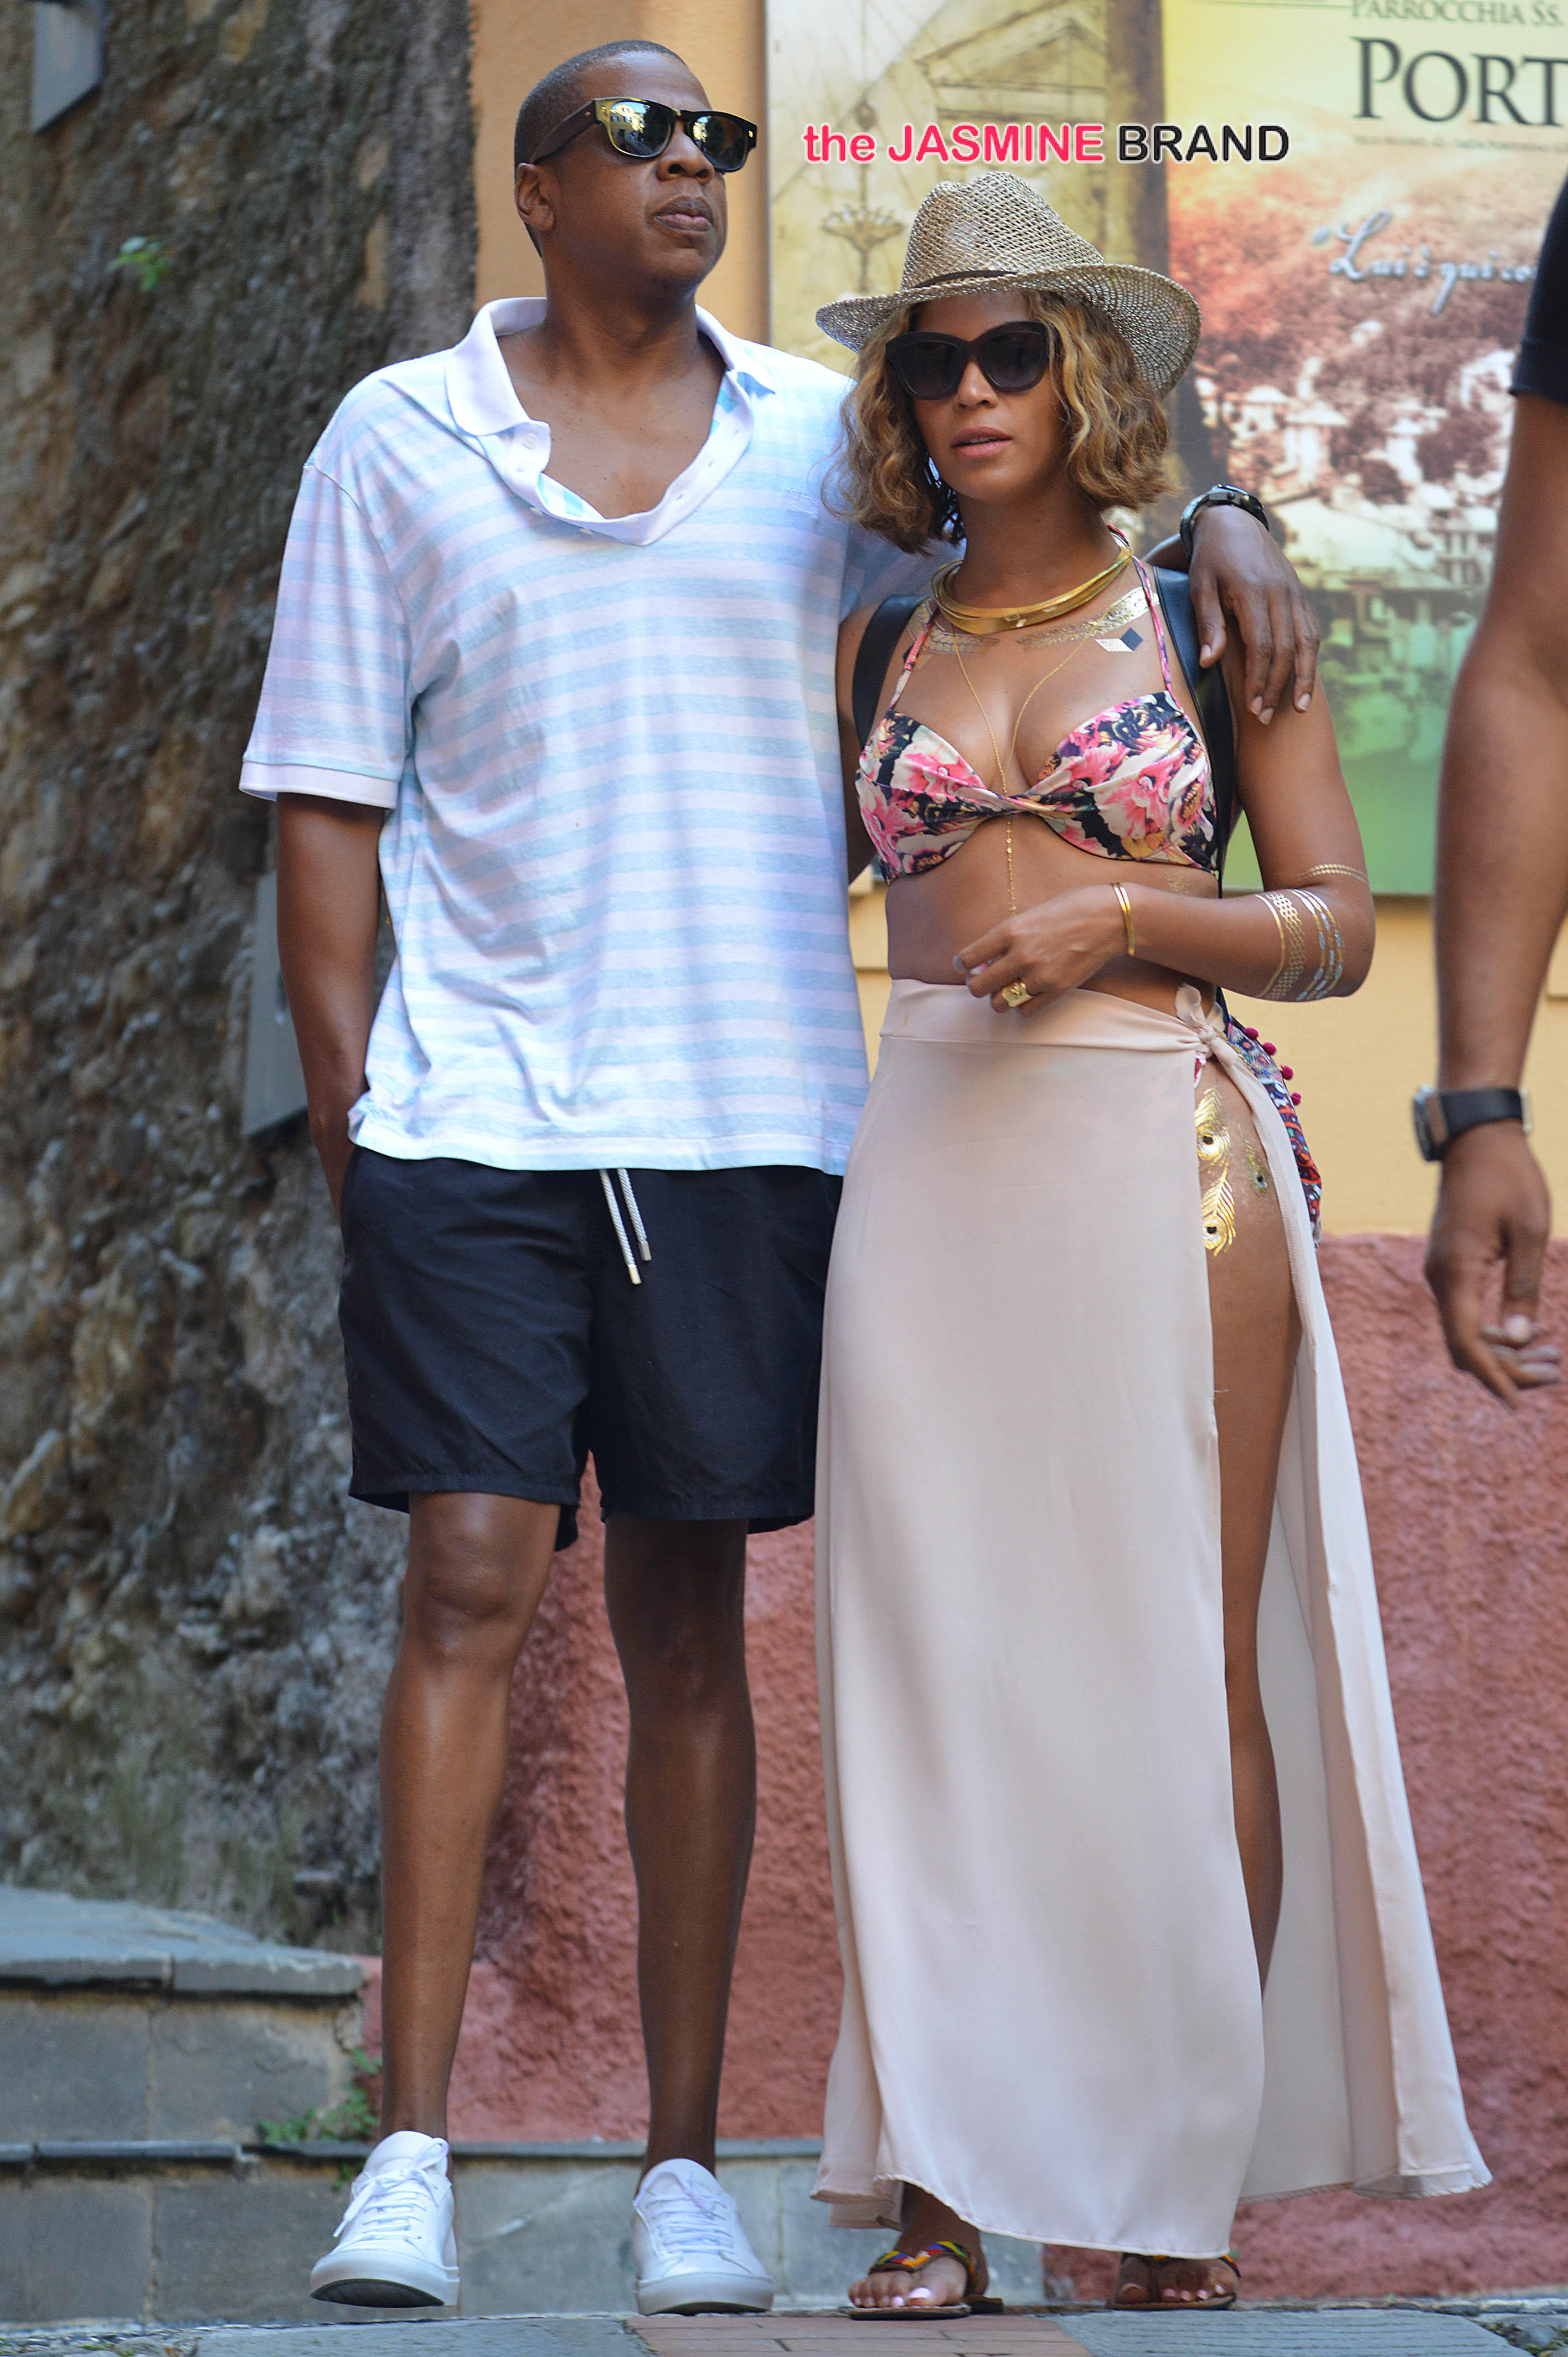 Beyonce and Jay Z on holiday in Portofino, Italy